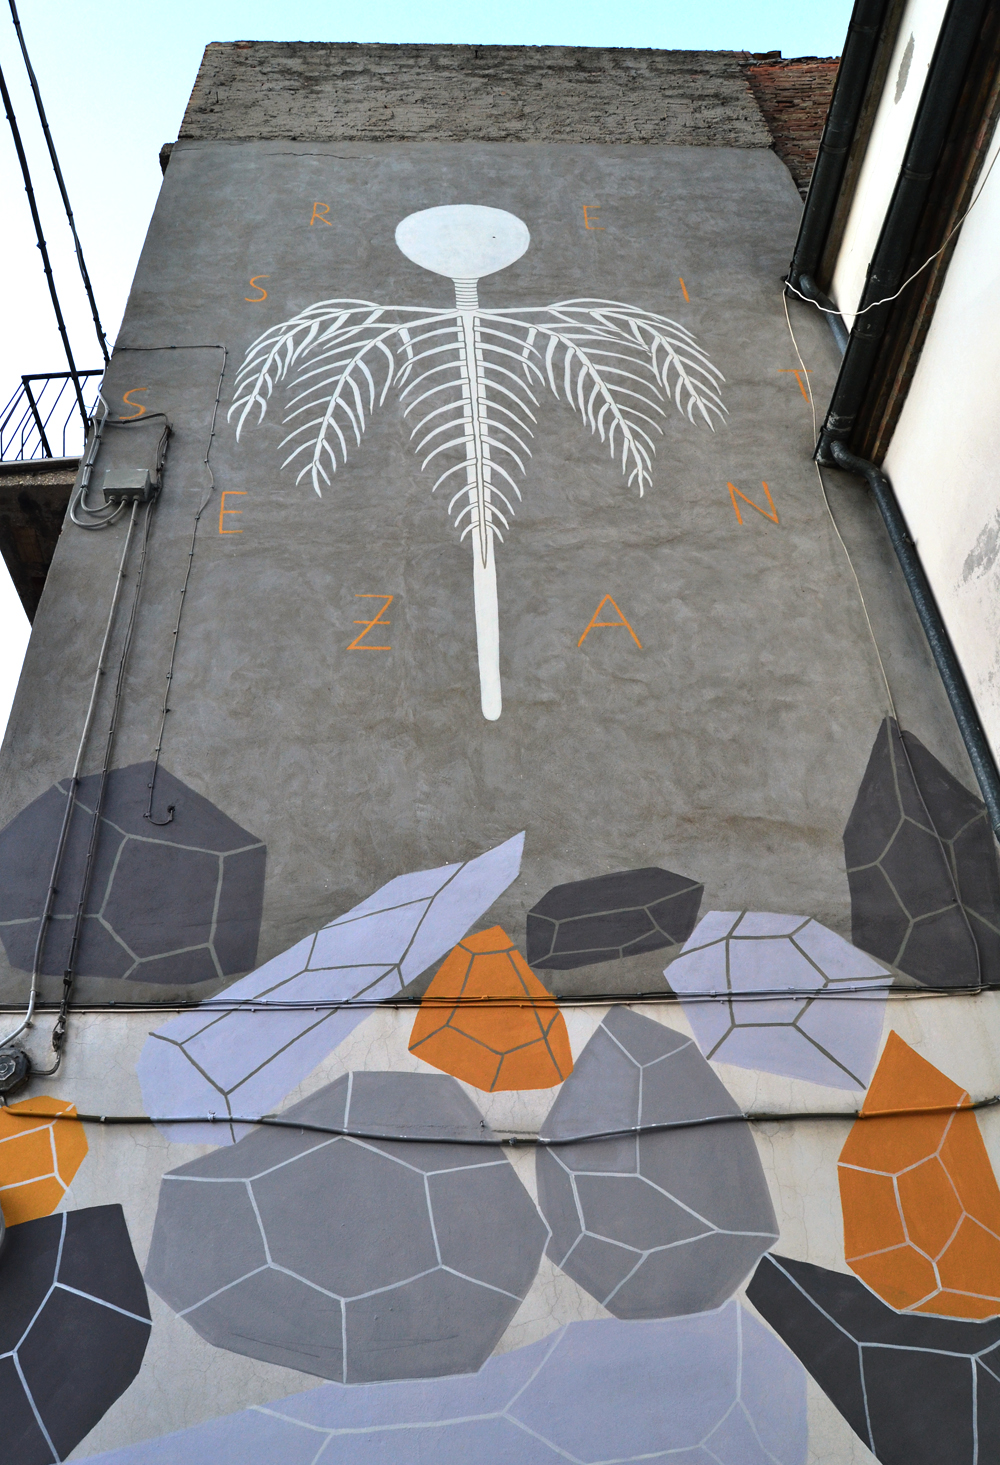 andreco-new-mural-in-mosciano-santangelo-03